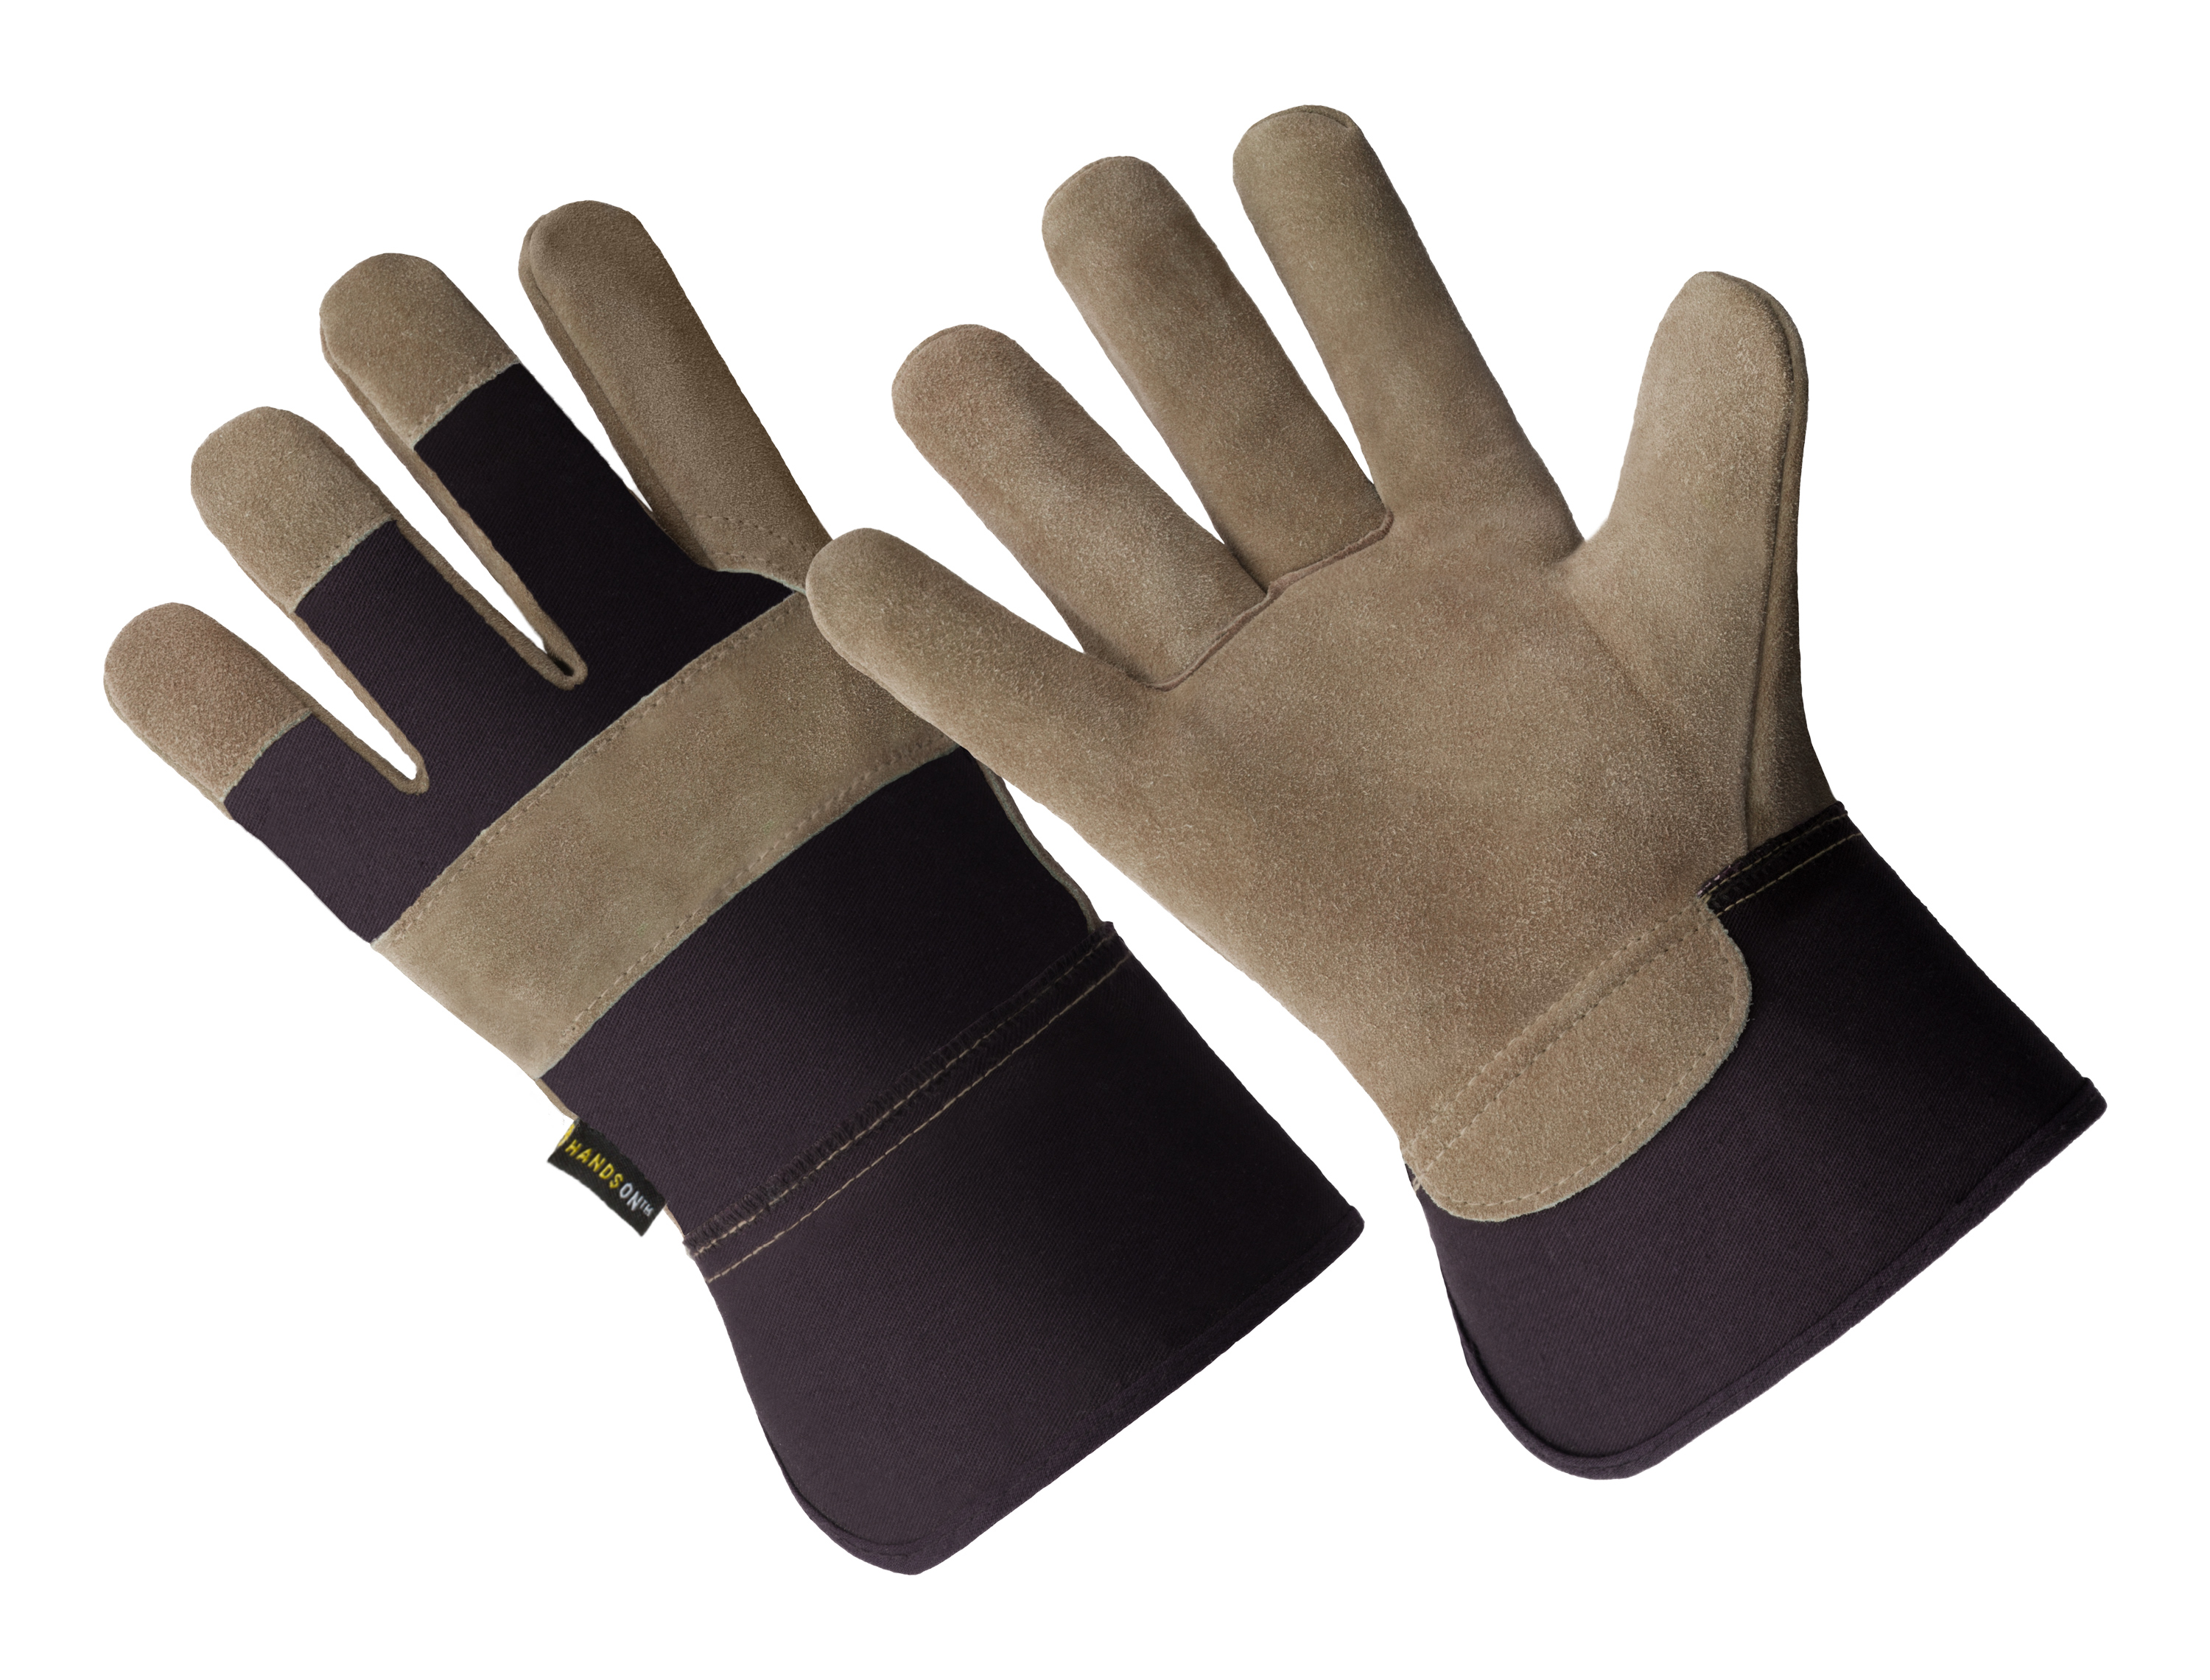 Guy Cotten backs Nordic red gloves xl and xxl sale